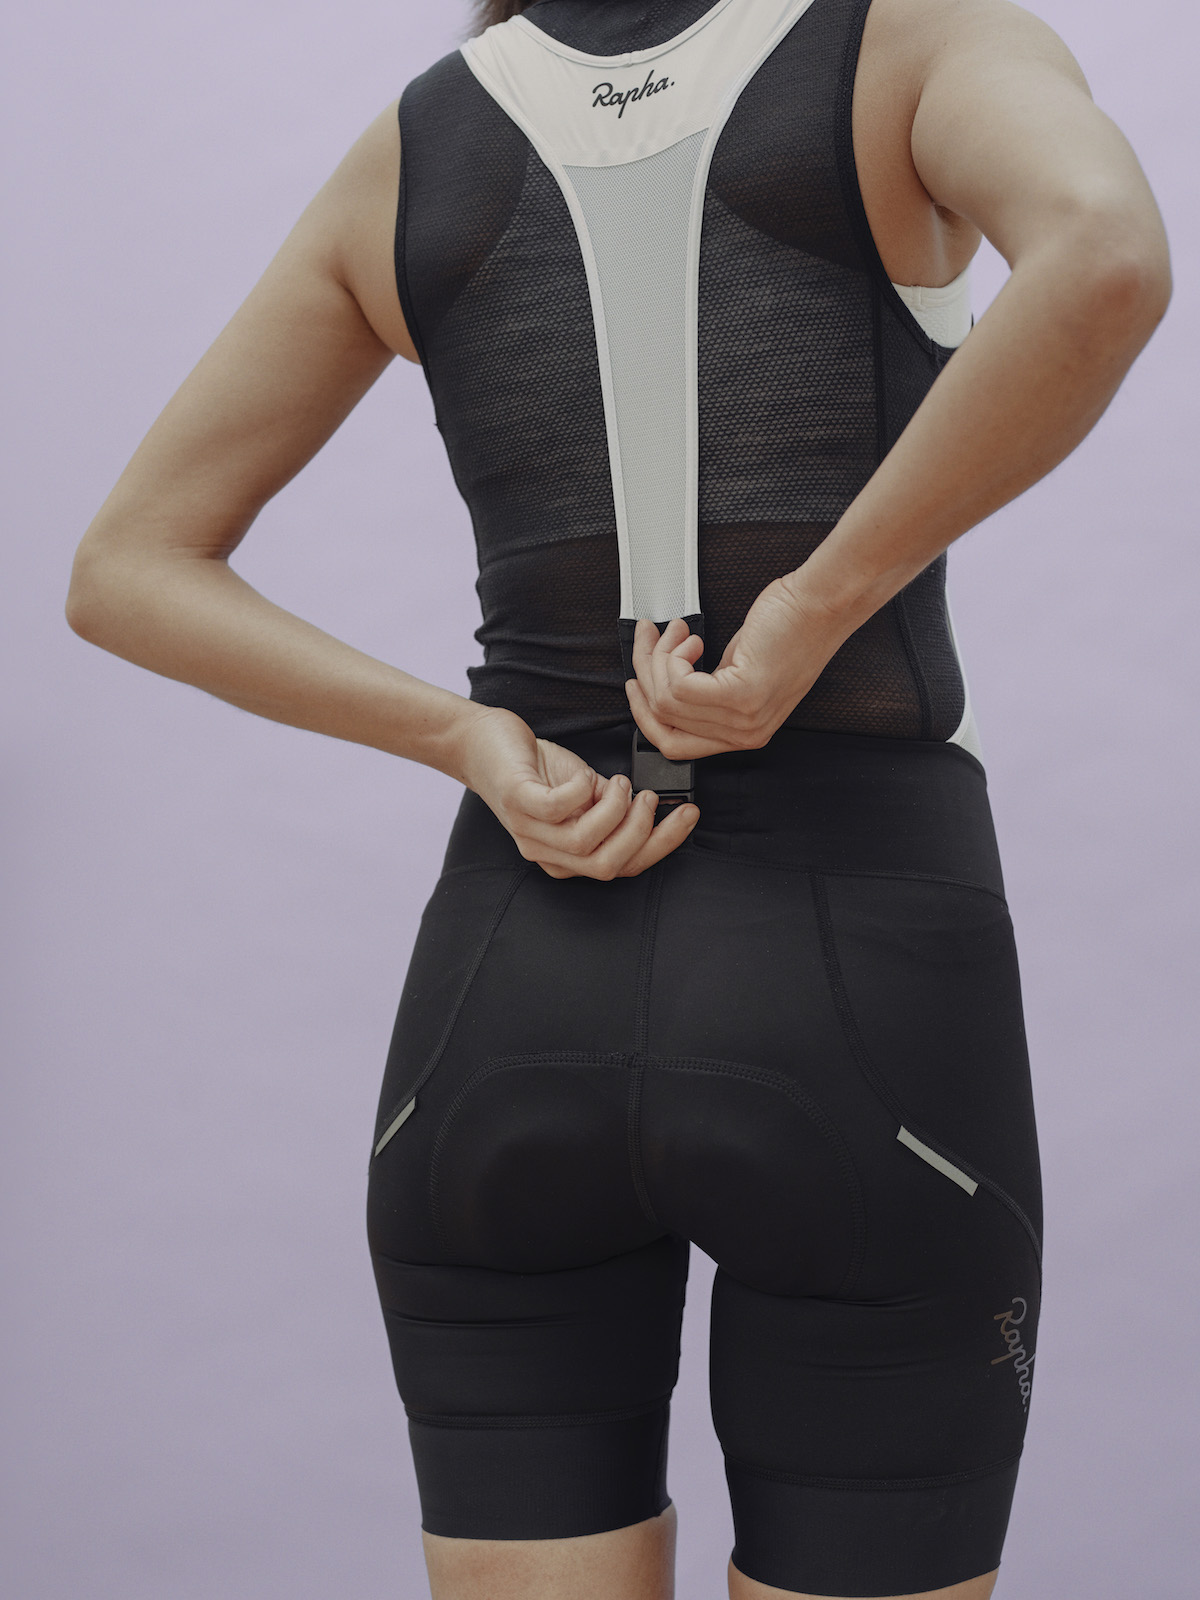 Rapha detachable bib shorts